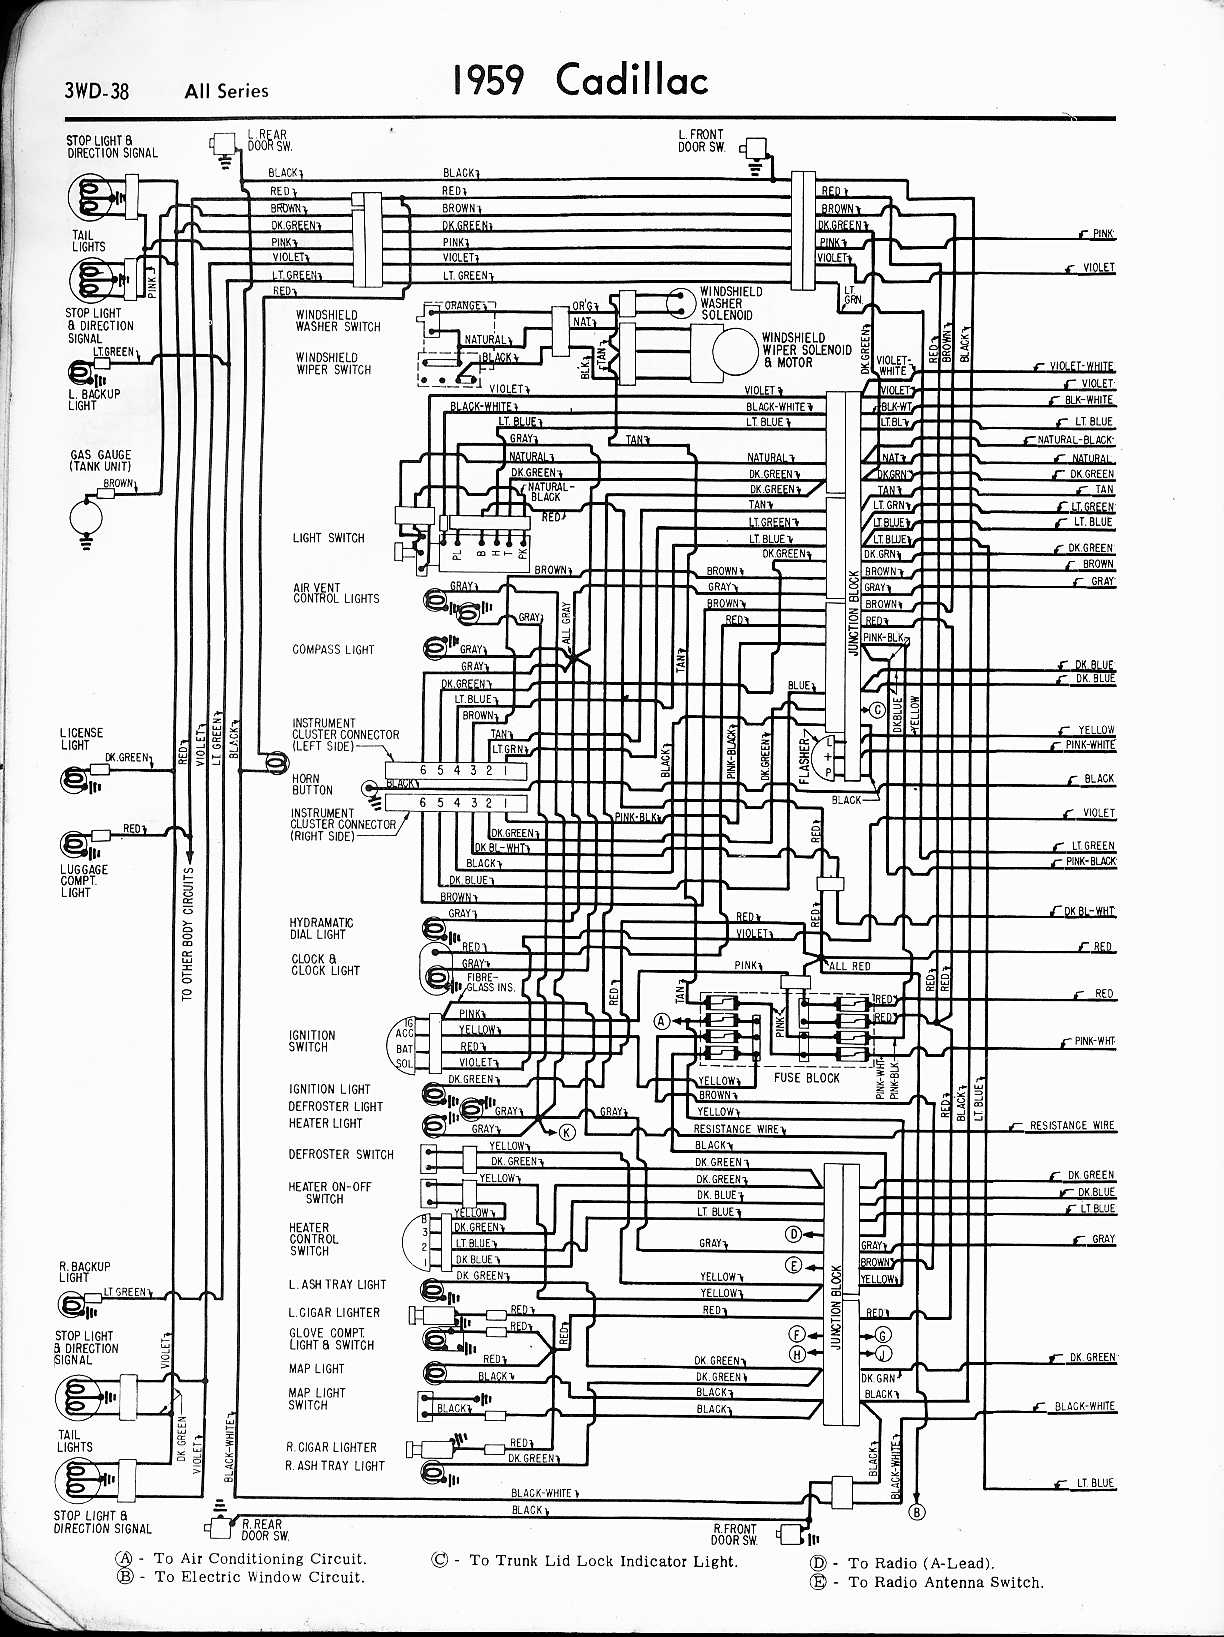 Cadillac Xlr Wiring Diagrams - WIRE Center •